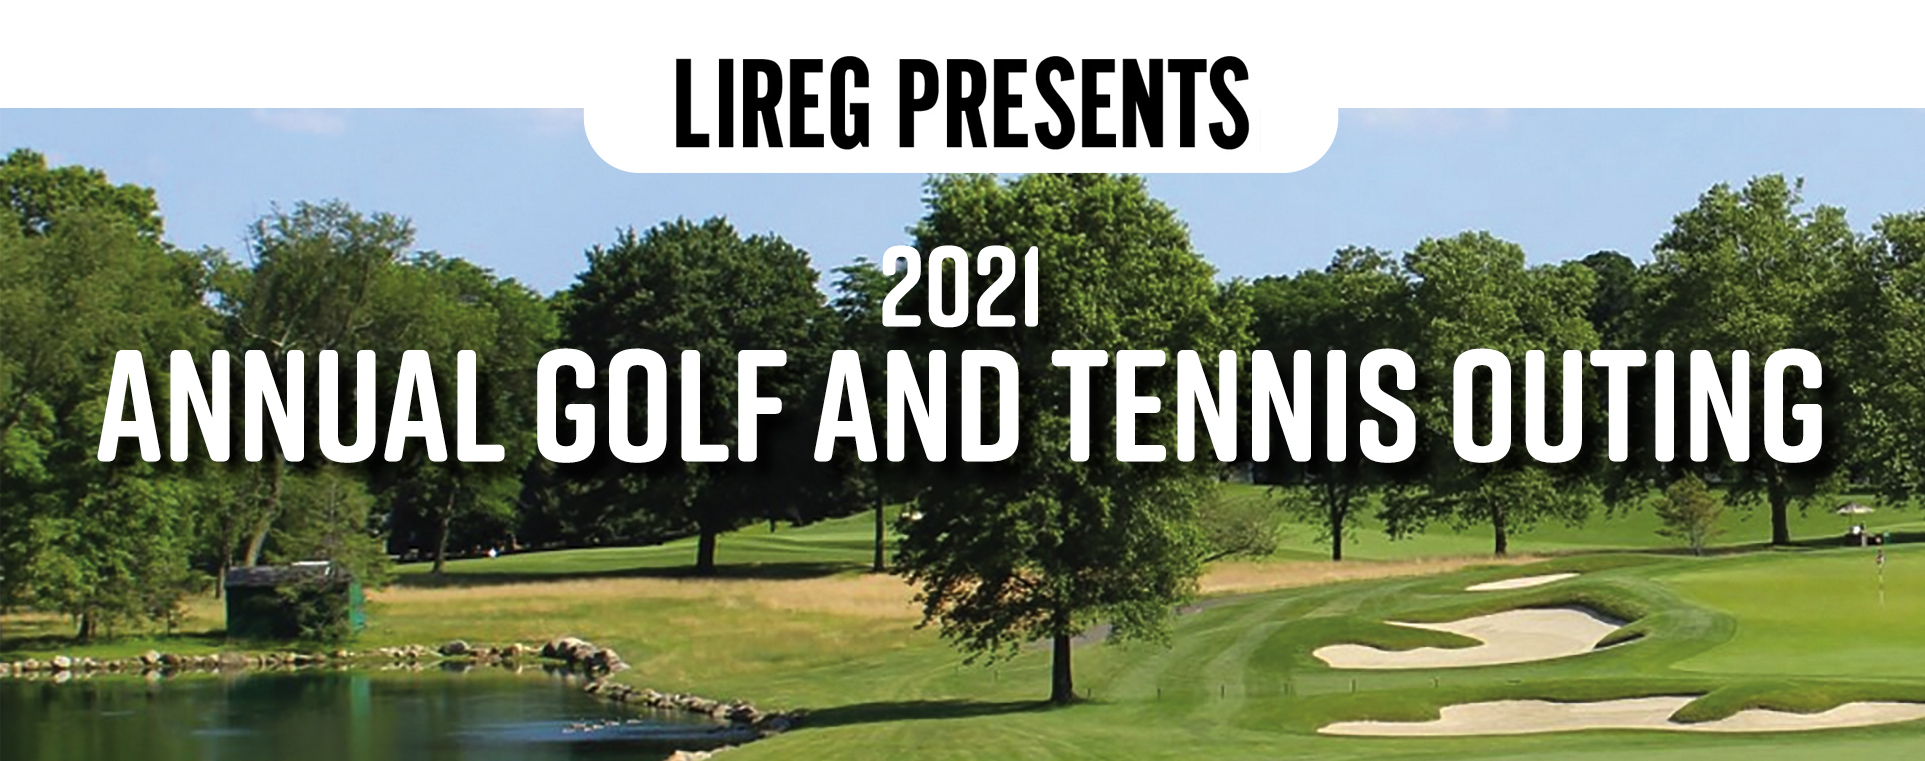 2021 Golf and Tennis Outing